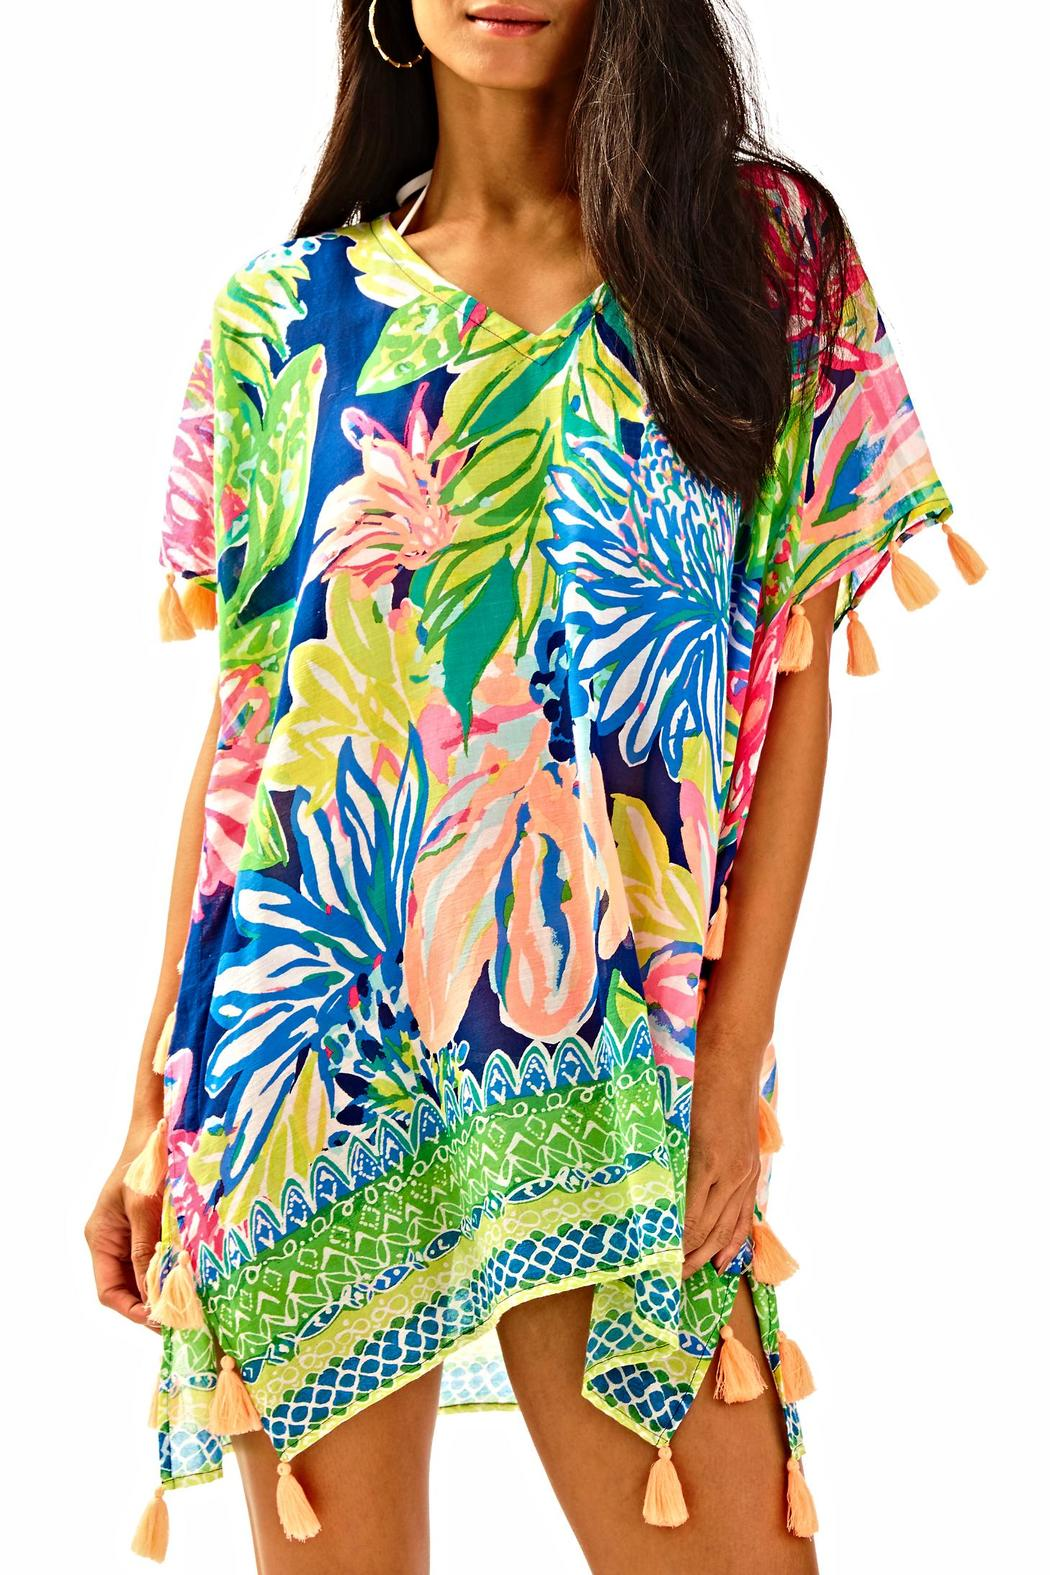 Lilly Pulitzer Castilla Cover Up Tunic From Sandestin Golf And Beach